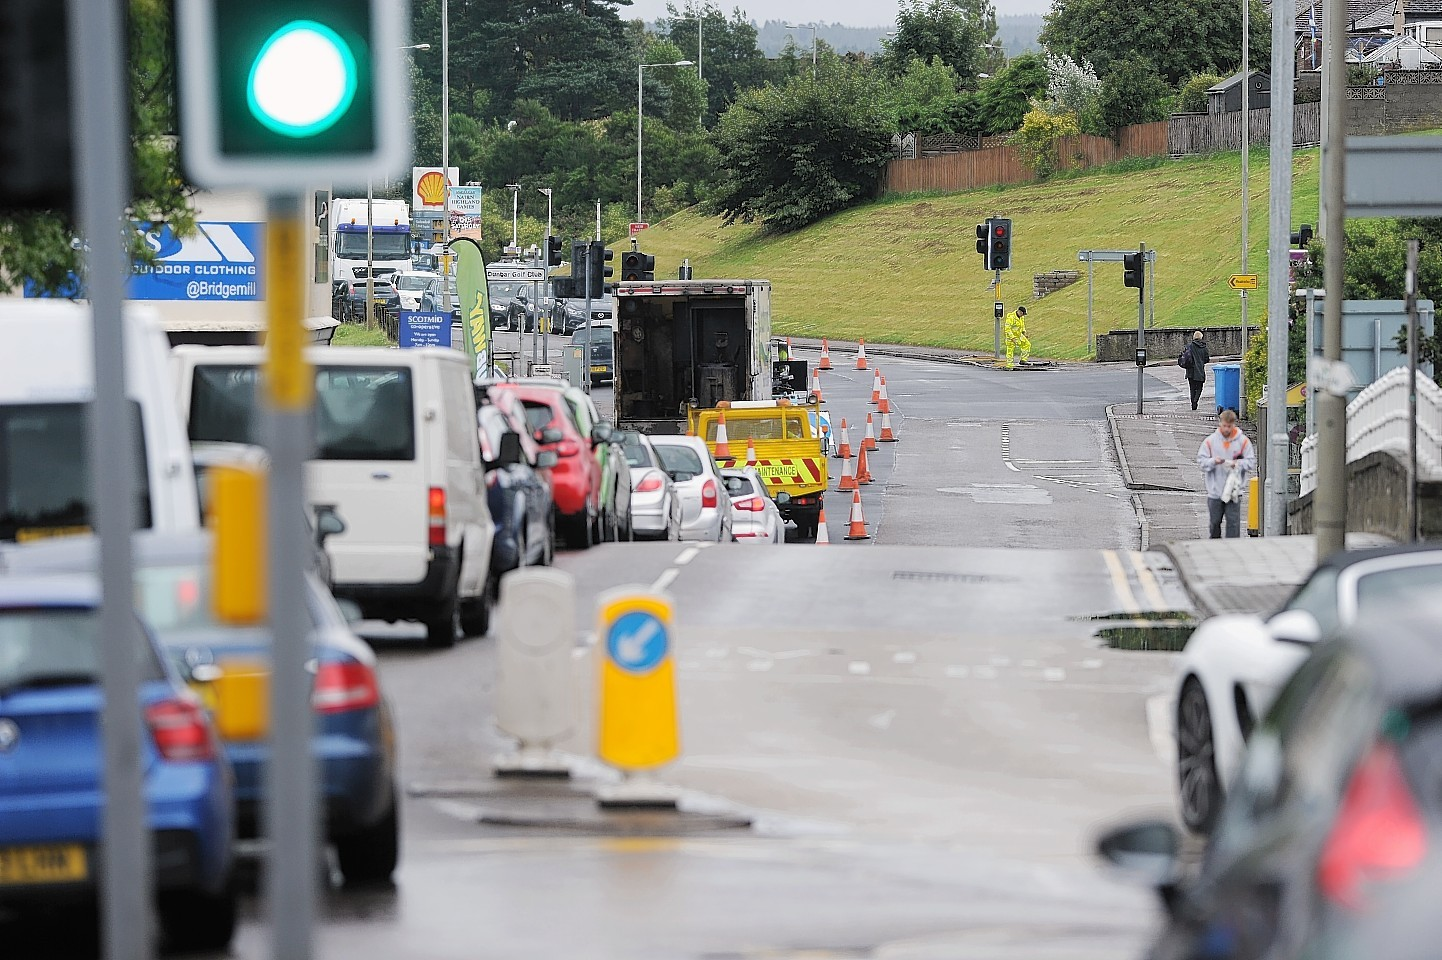 A group is being formed to consider Nairn's traffic light problems